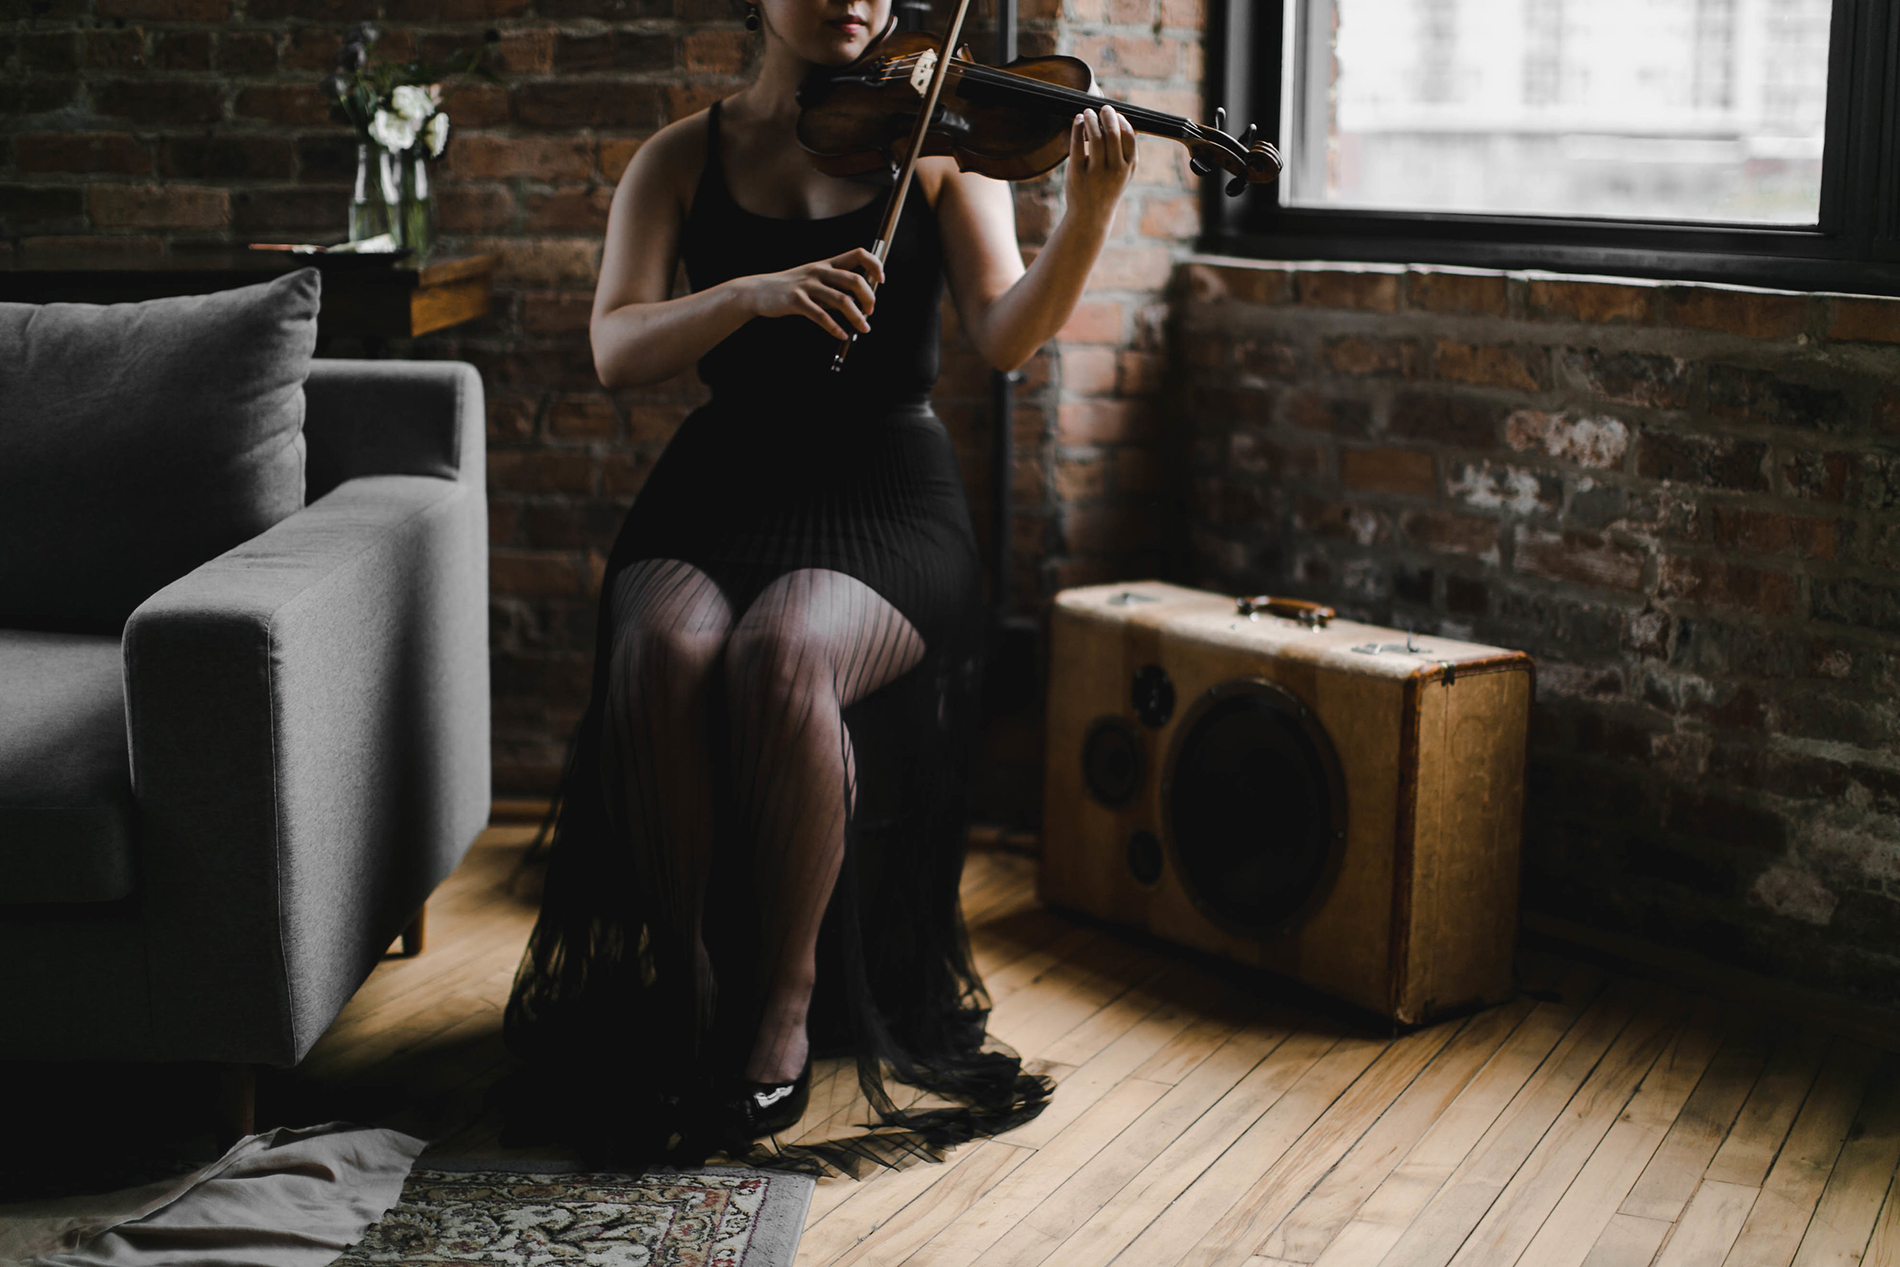 Photo by Melody Joy Co, Styling by All Dei Events, Violinist: Priscilla Suh